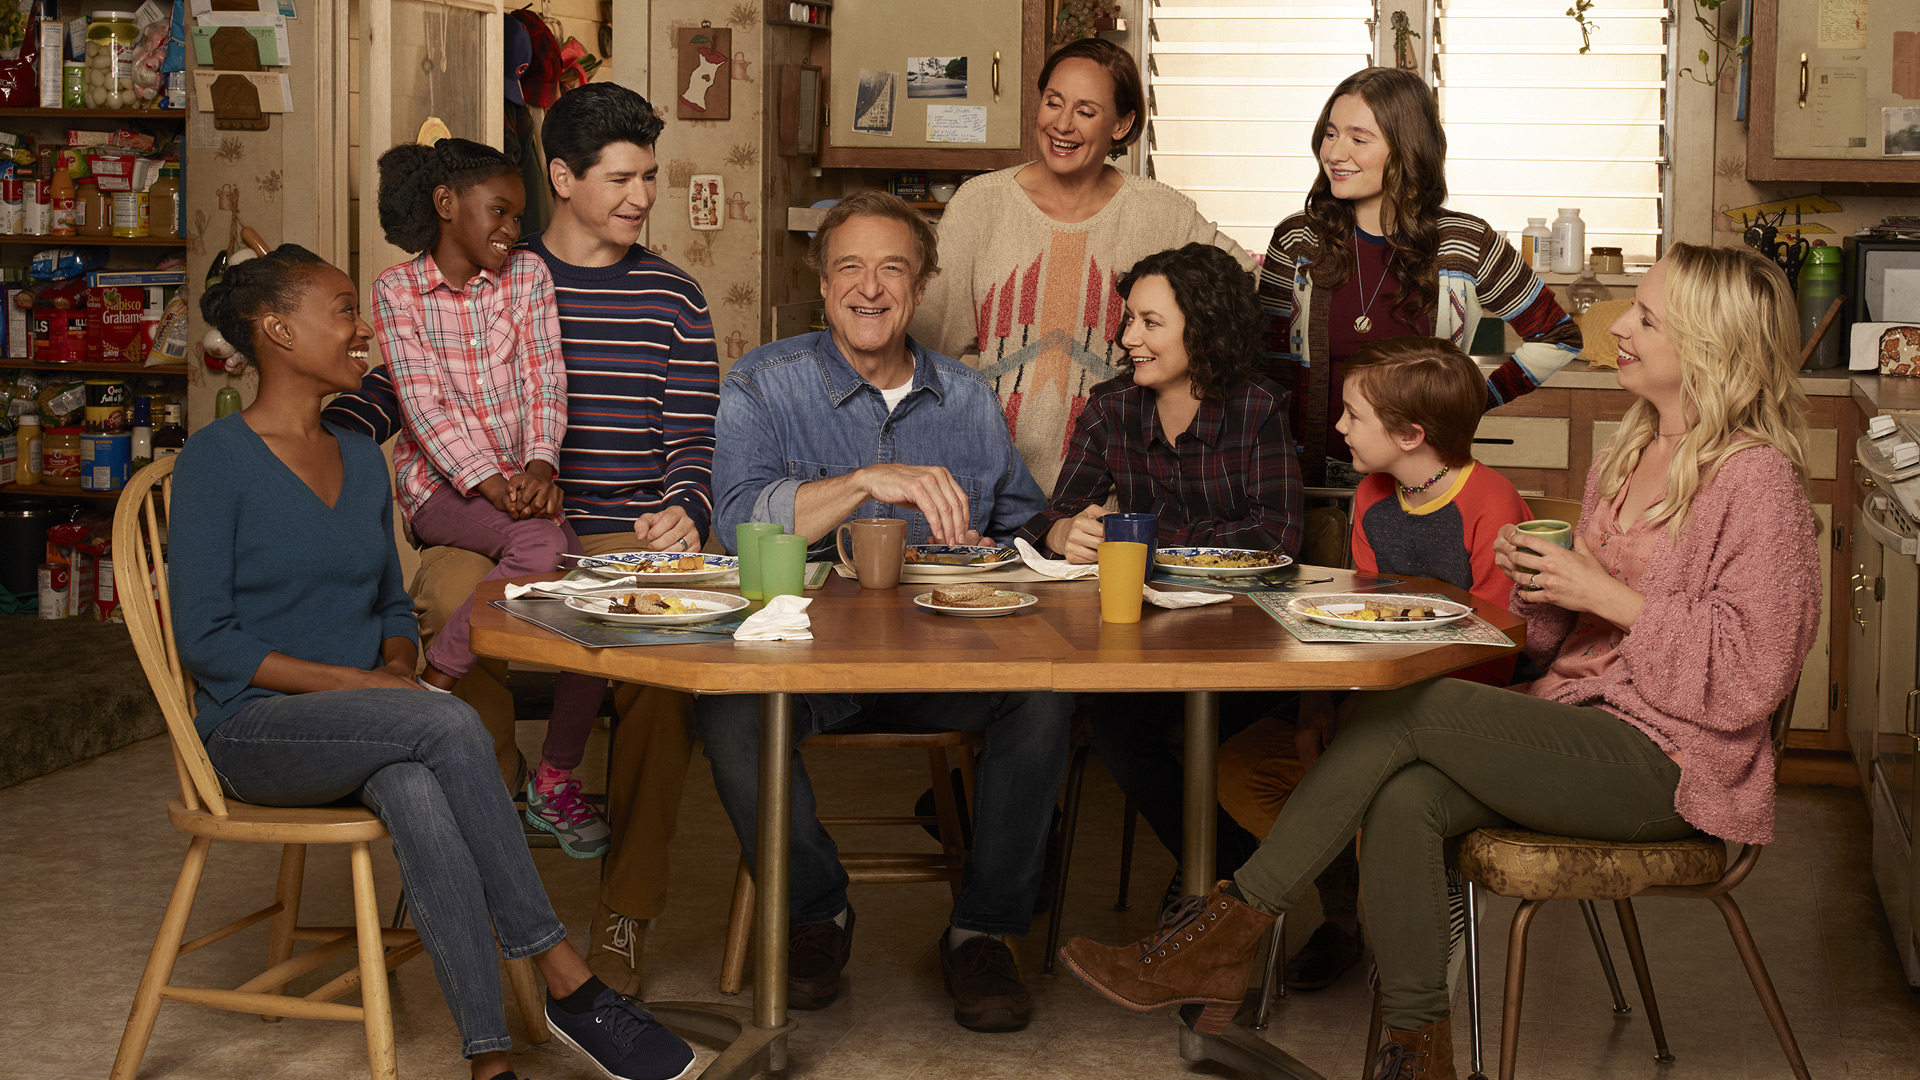 ABC will broadcast a live episode of The Conners